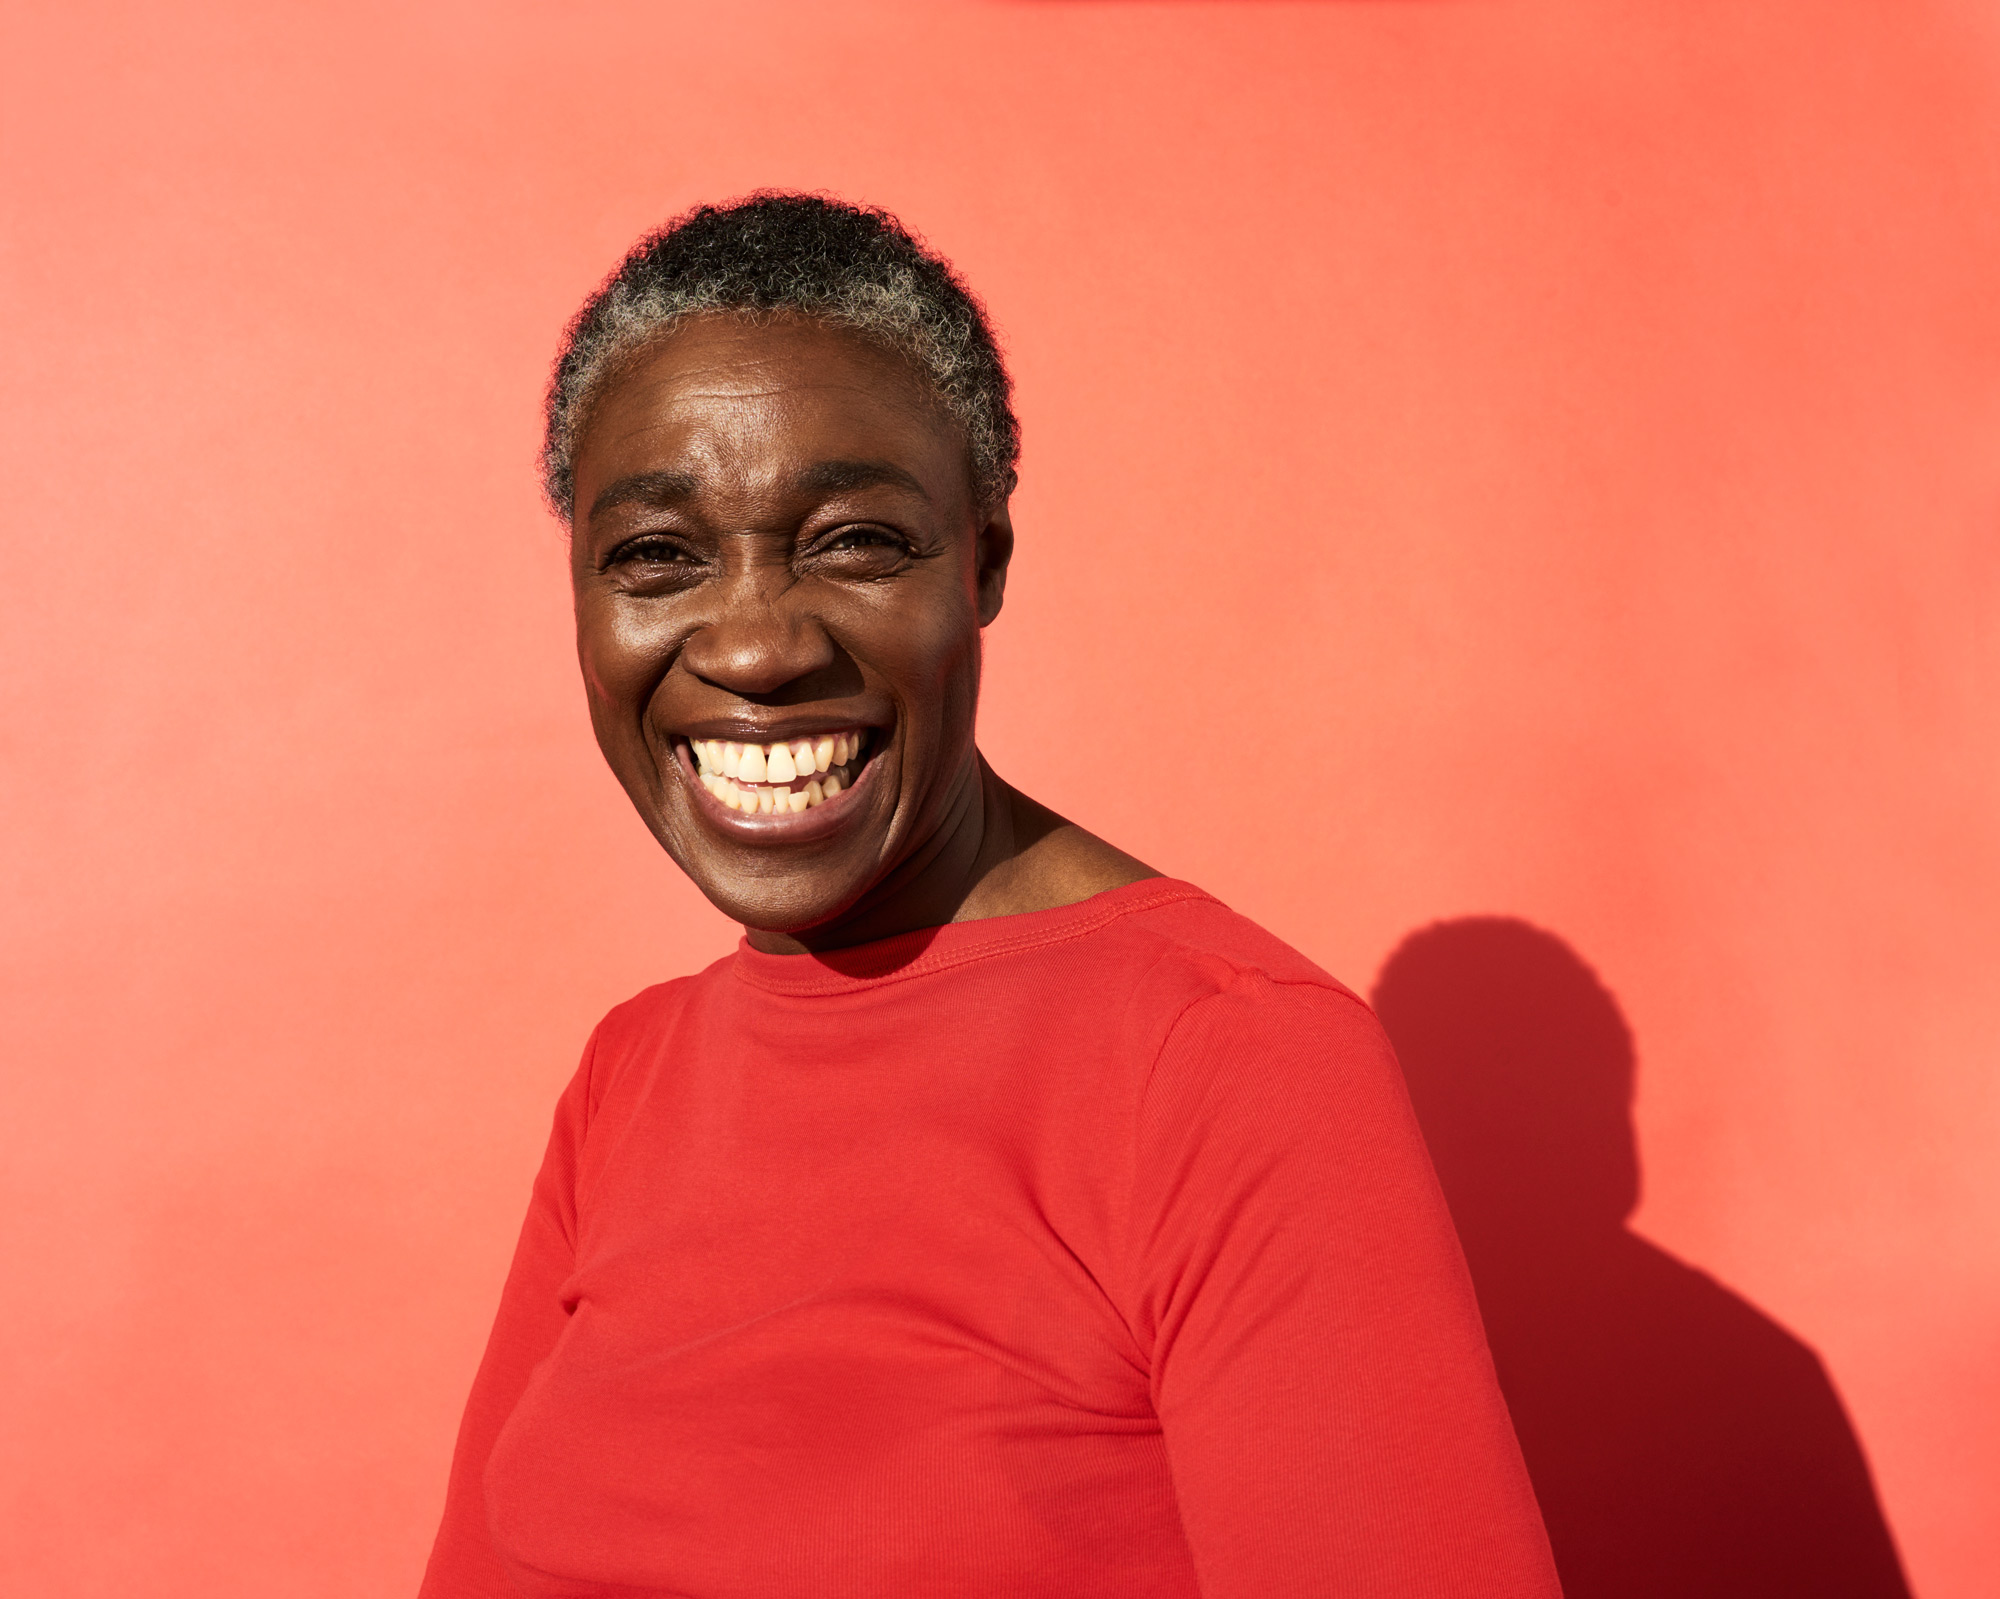 African American woman in red shirt smiling